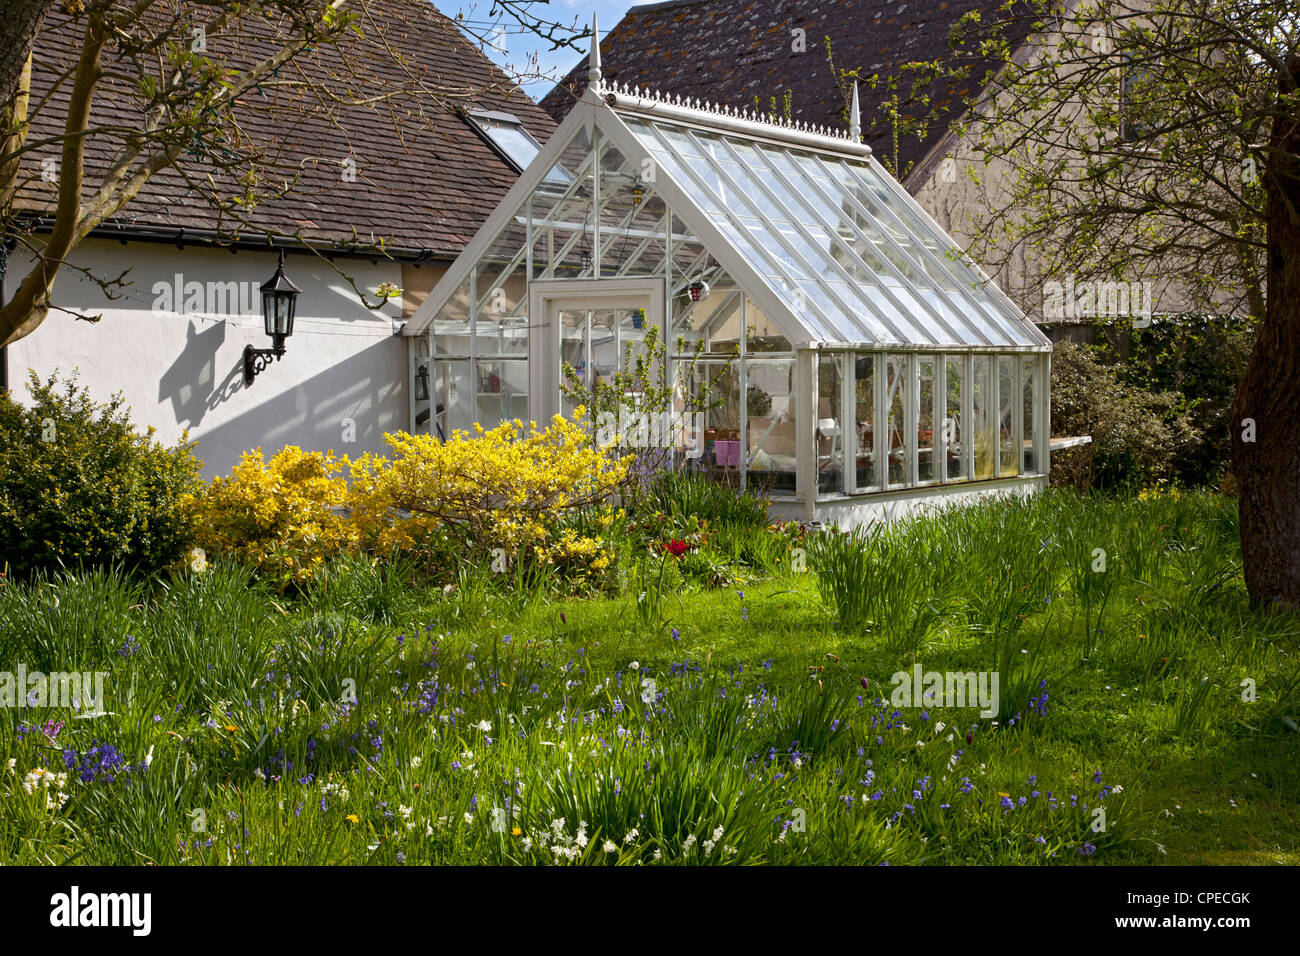 Traditionally made old style Victorian glass greenhouse in private garden - Stock Image